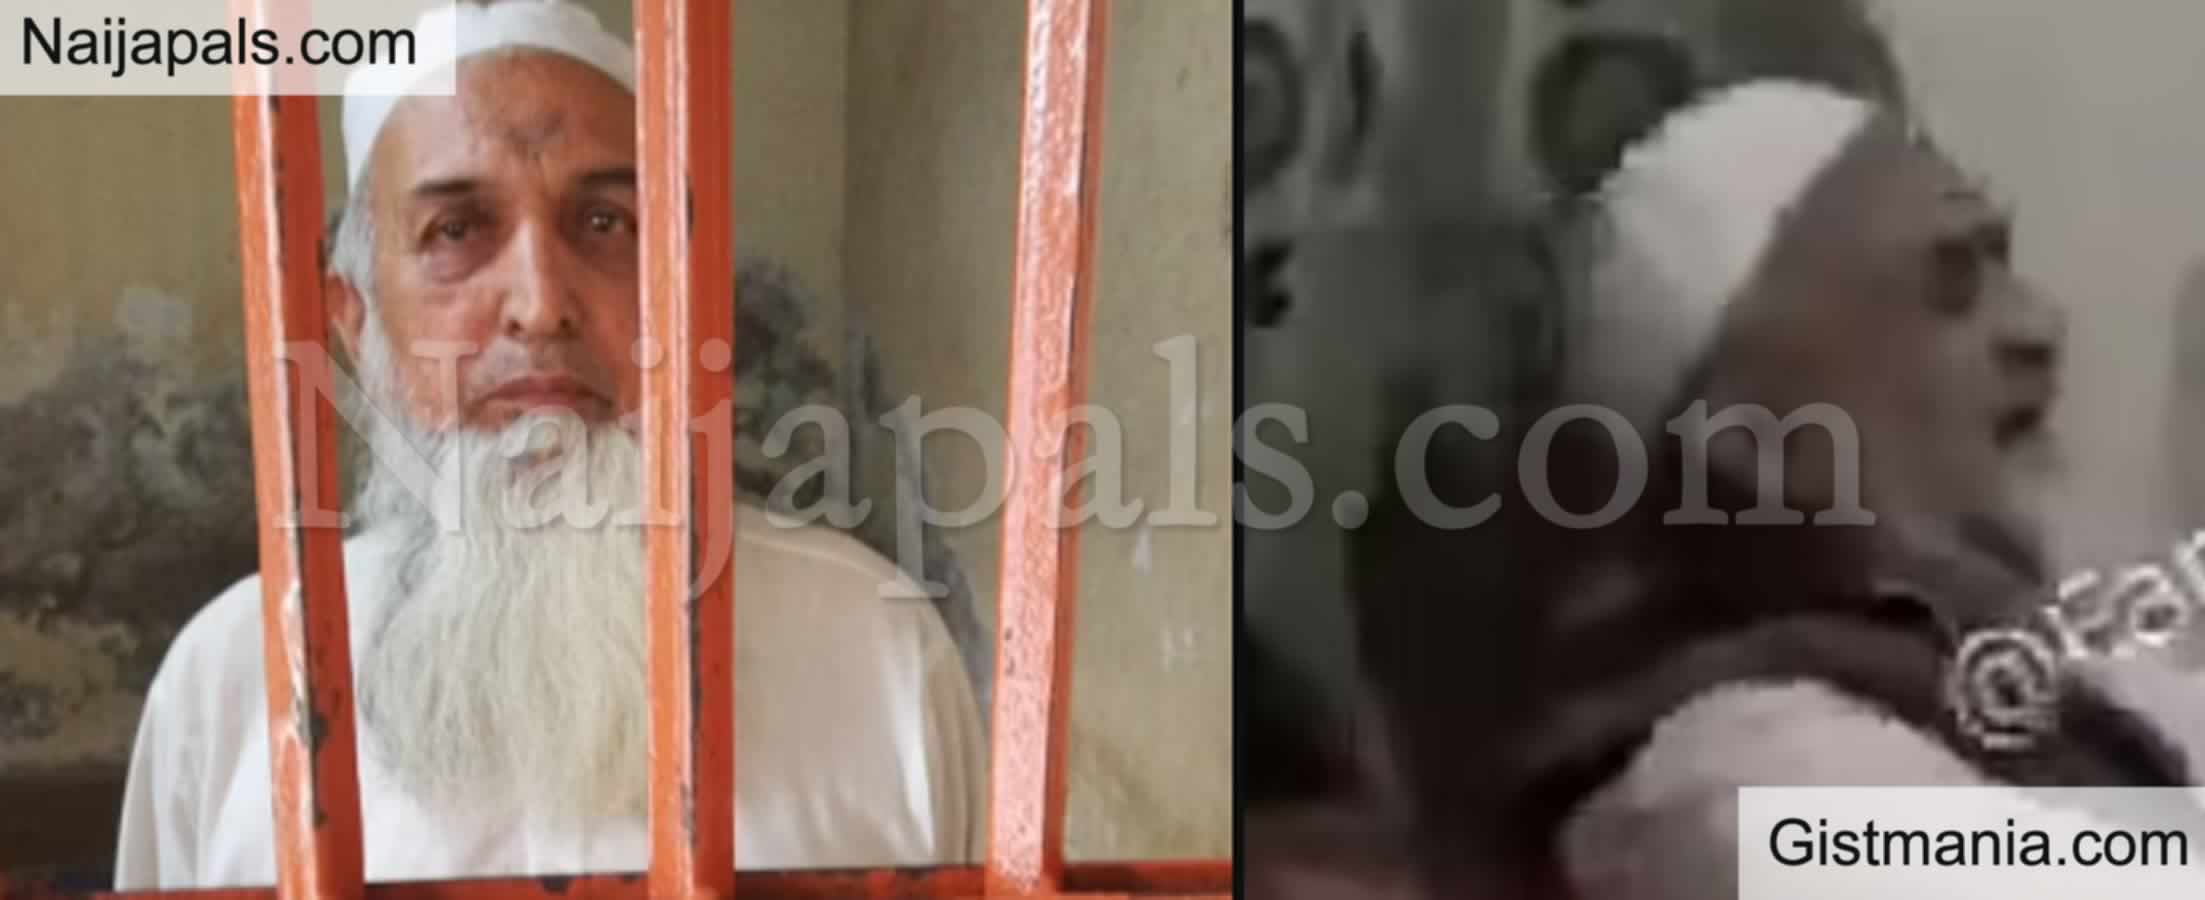 <img alt='.' class='lazyload' data-src='https://img.gistmania.com/emot/thumbs_down.gif' /> <b>Muslim Cleric In Jail After He Was Caught On Video S3xually Assaulting A Male Student</b> (PHOTO)